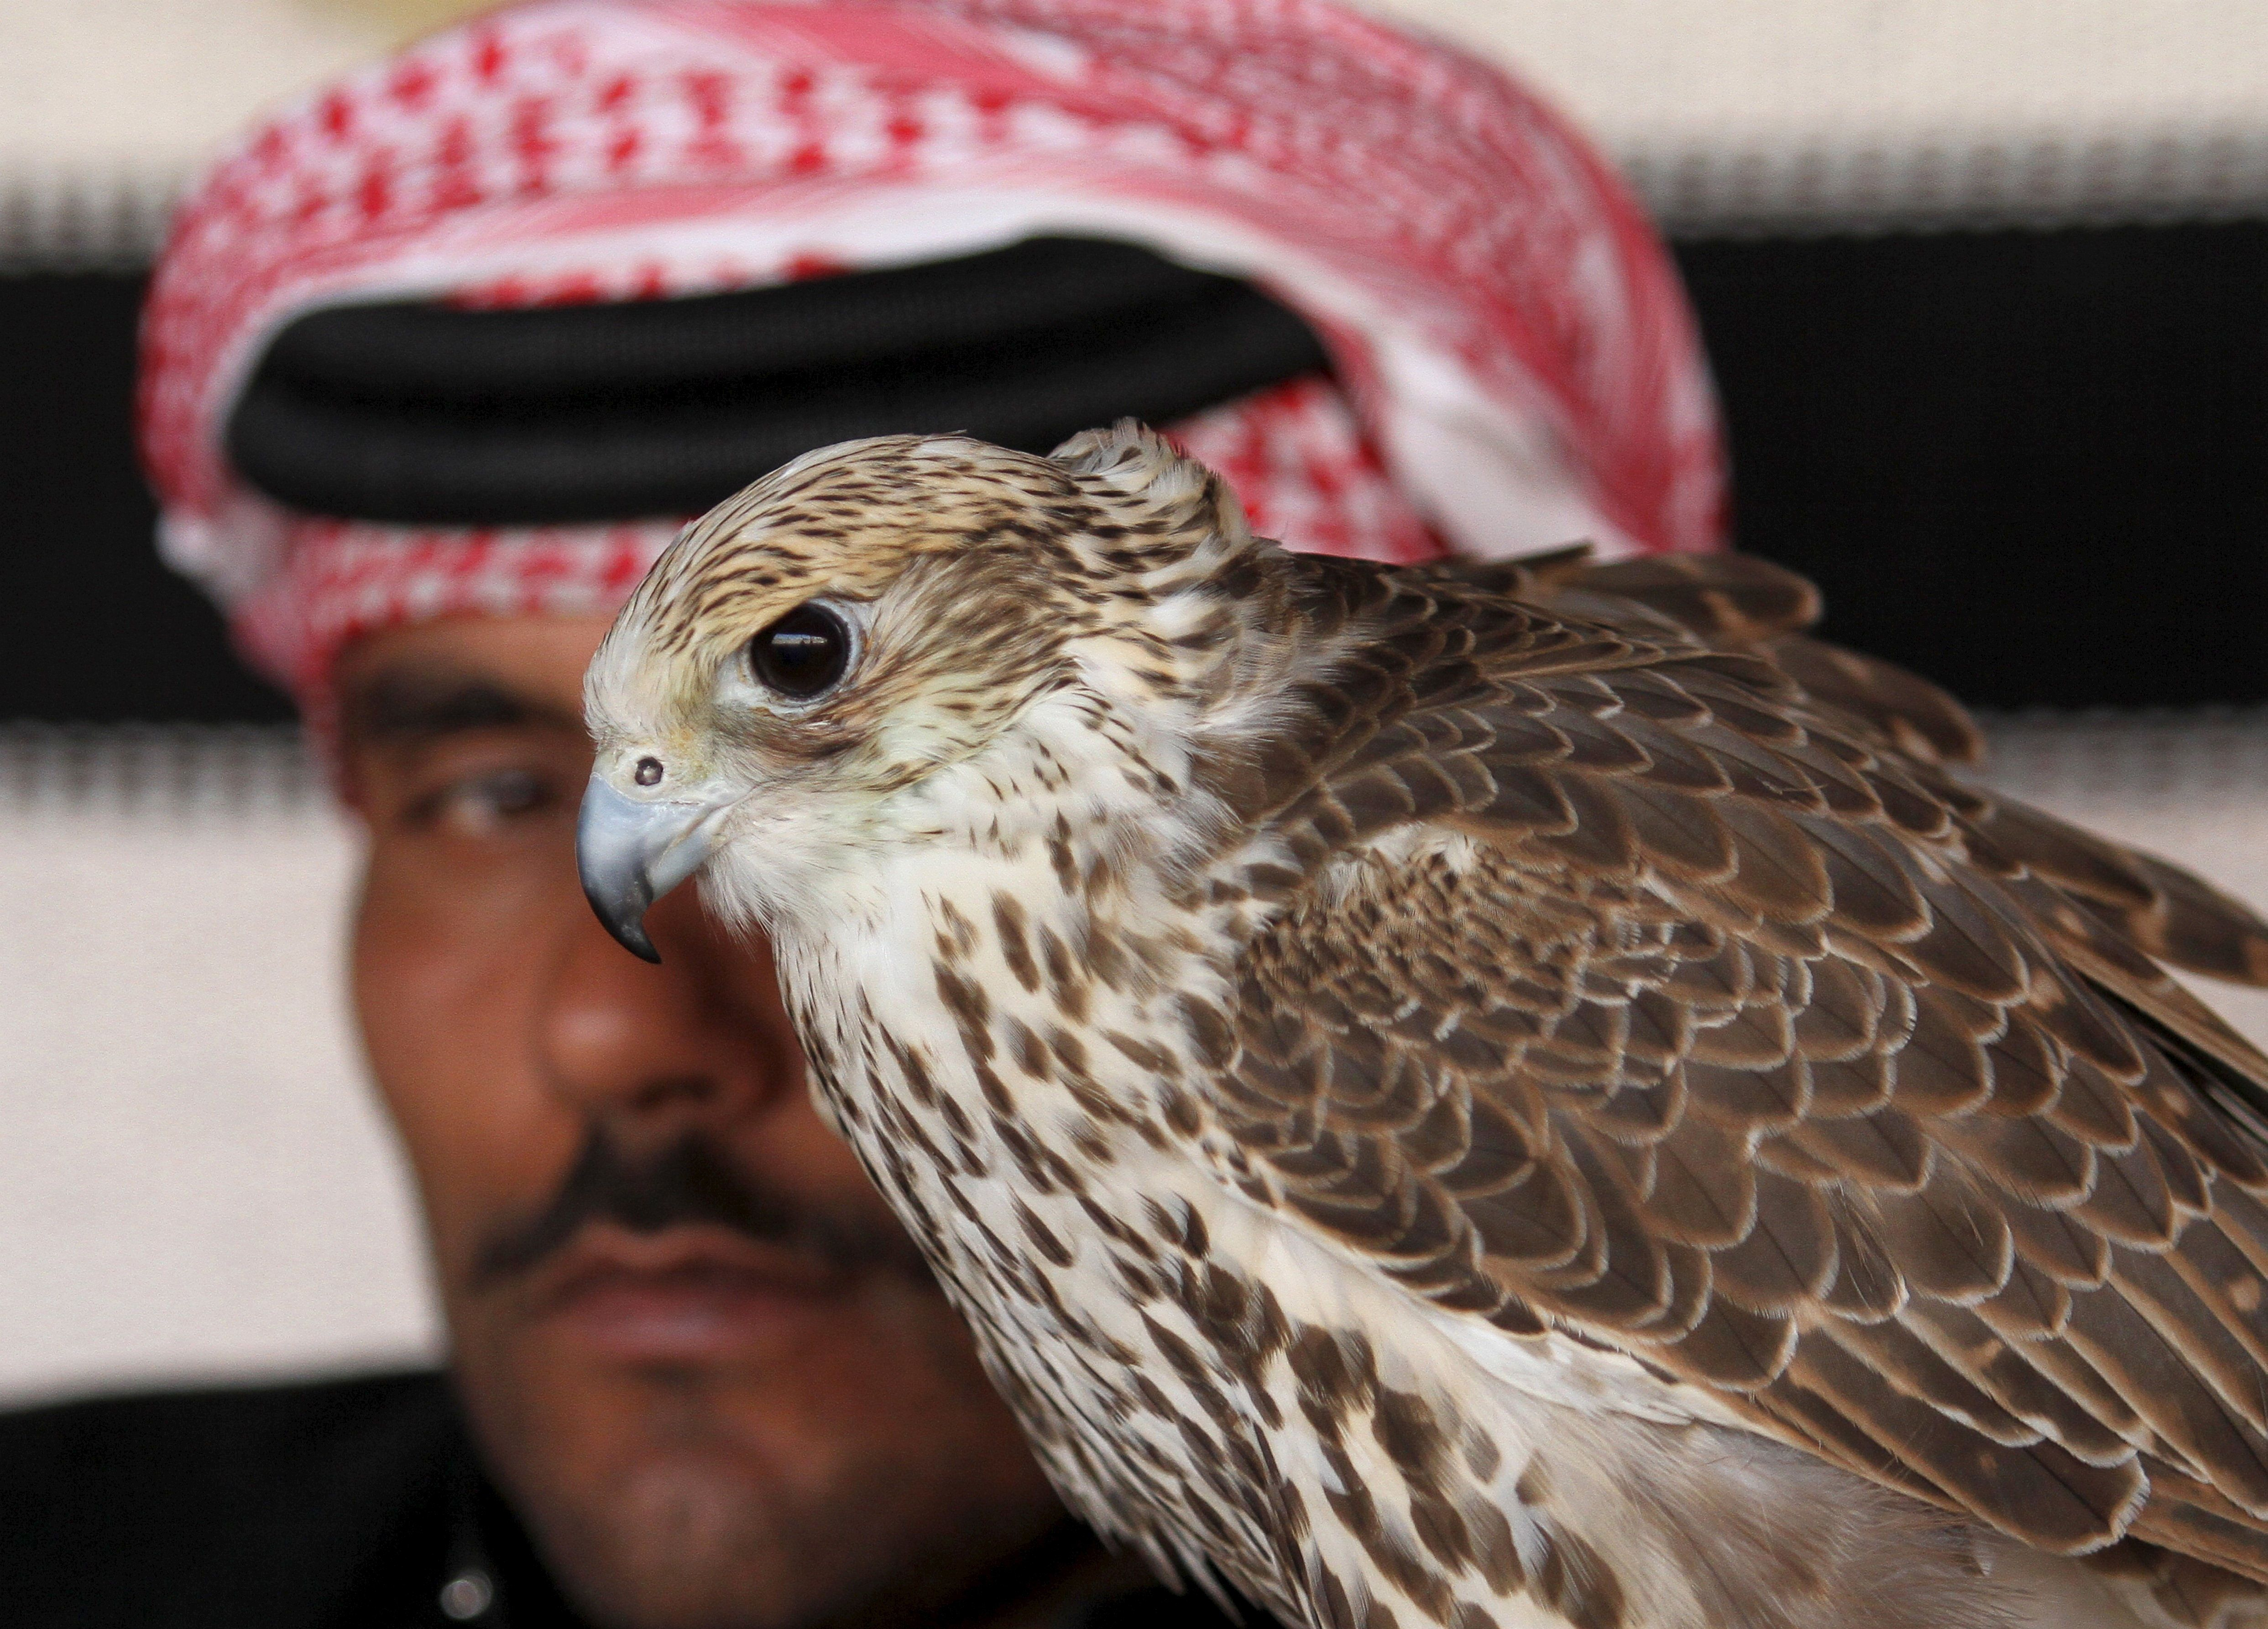 """A man sits next to his falcon as he waits to participate in a falcon contest during Qatar International Falcons and Hunting Festival at Sealine desert, Qatar January 29, 2016. The participants at the contest compete for the fastest falcon at attacking its prey. Scores of wealthy Gulf Arabs descend on Iraq to hunt the houbara bustard, a rare desert bird, with trained falcons through the winter months. But the kidnapping of 26 Qataris in December 2015 in the Iraqi desert while hunting, including members of the country's royal family, has highlighted the risks of pursuing the """"sport of kings"""" at a time of heightened regional turmoil.  Picture taken January 29, 2016. REUTERS/Naseem Zeitoon"""